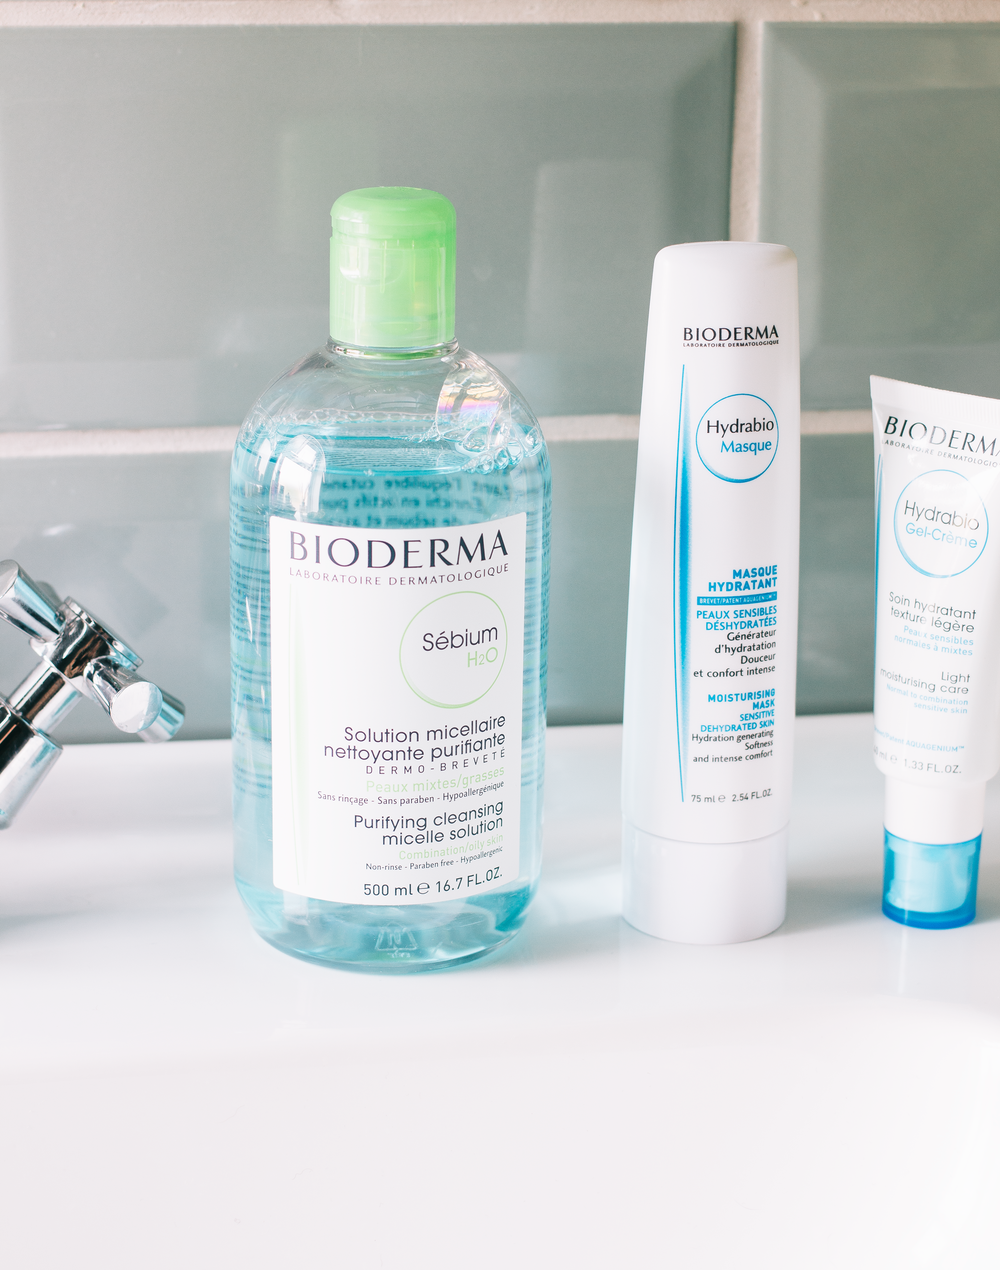 bioderma sébium h20* - Now isn't this a serious throwback for this blog? This is one of the first skincare items I ever used so it's been so exciting to add it back into my routine to see how it fairs to it now as obviously your skin can change a serious amount in 6 years. For a quick refresh in a morning or in the evening before I properly wash my face a cotton wool round doused in this is great when I'm feeling a little more spotty. Which is inevitable when I eat a perhaps too many strawberry & orange creams as well as some of those delicious caramel barrels. If you're a little more oily or have combination skin than this formulation of the classic micellar solution is a great option during this season where you more than likely don't have the energy to stand over the sink past midnight It gets rid of anything you have on the skin (please do be careful when using around the eye area) without leaving my complexion feeling stripped or dry as even though I have oily areas I want to feel balanced rather than parched. And even though this helps my skin feel balanced when I do have a pesky white head pop up this certainly helps calm it down as they can certainly be angry when they erupt.